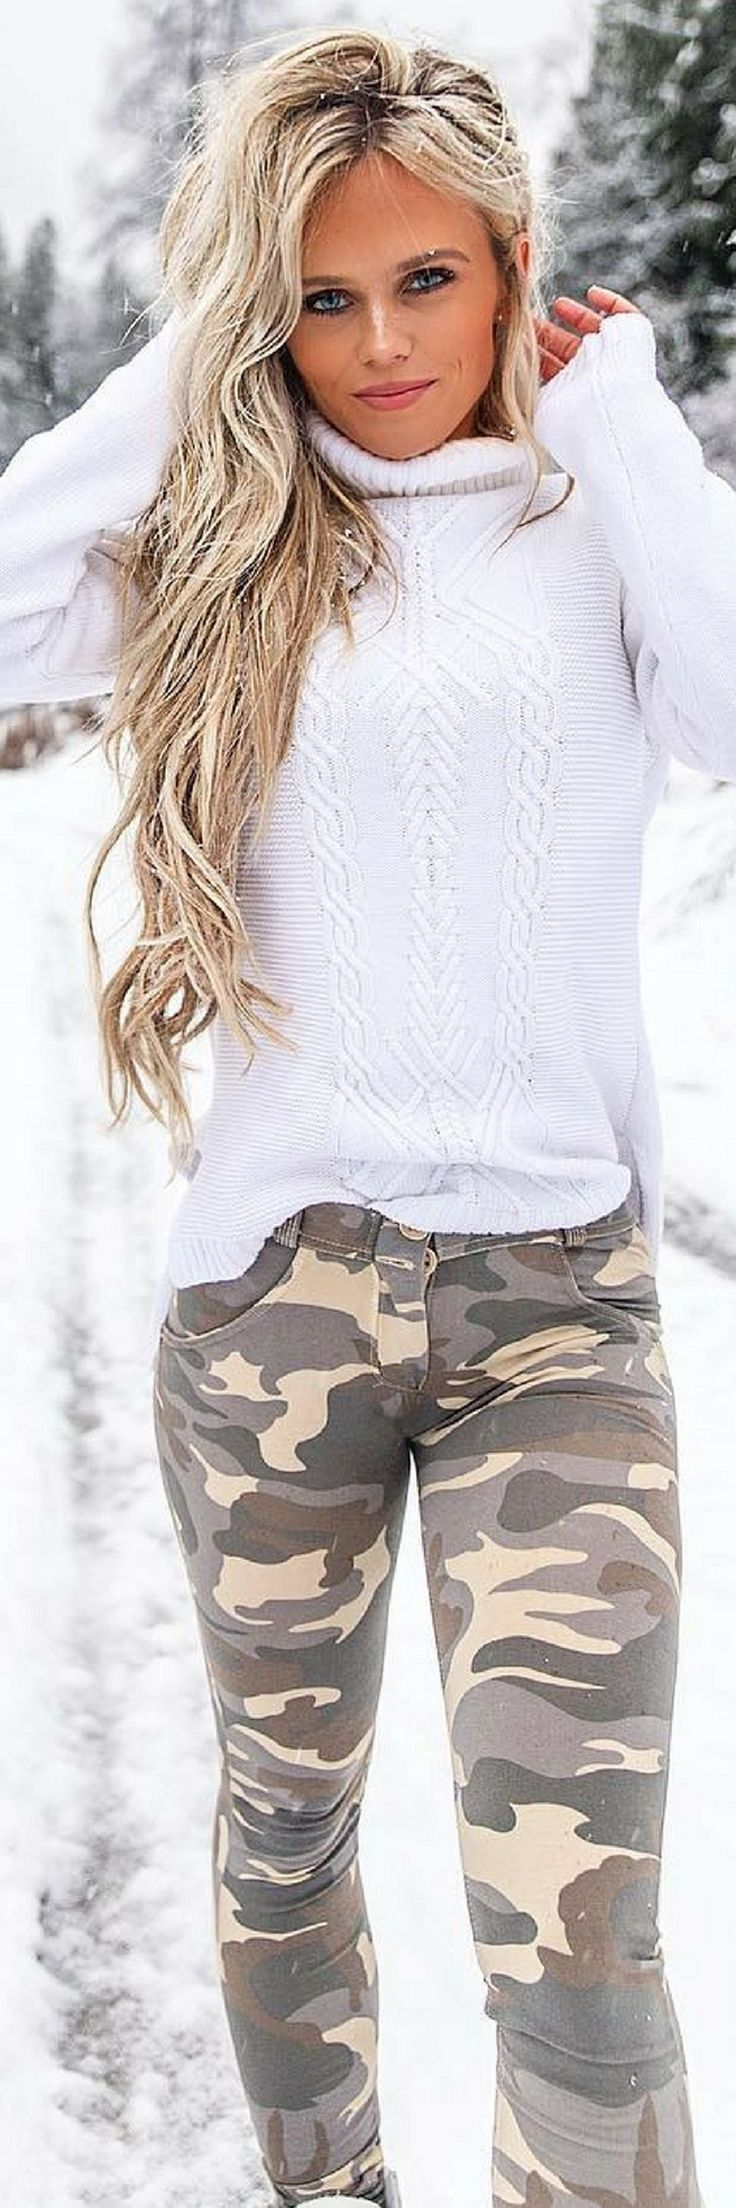 Awesome 47 Sexy Women Winter Outfits Ideas To Makes You Stand Out. More at http://aksahinjewelry.com/2018/01/13/47-sexy-women-winter-outfits-ideas-makes-stand/